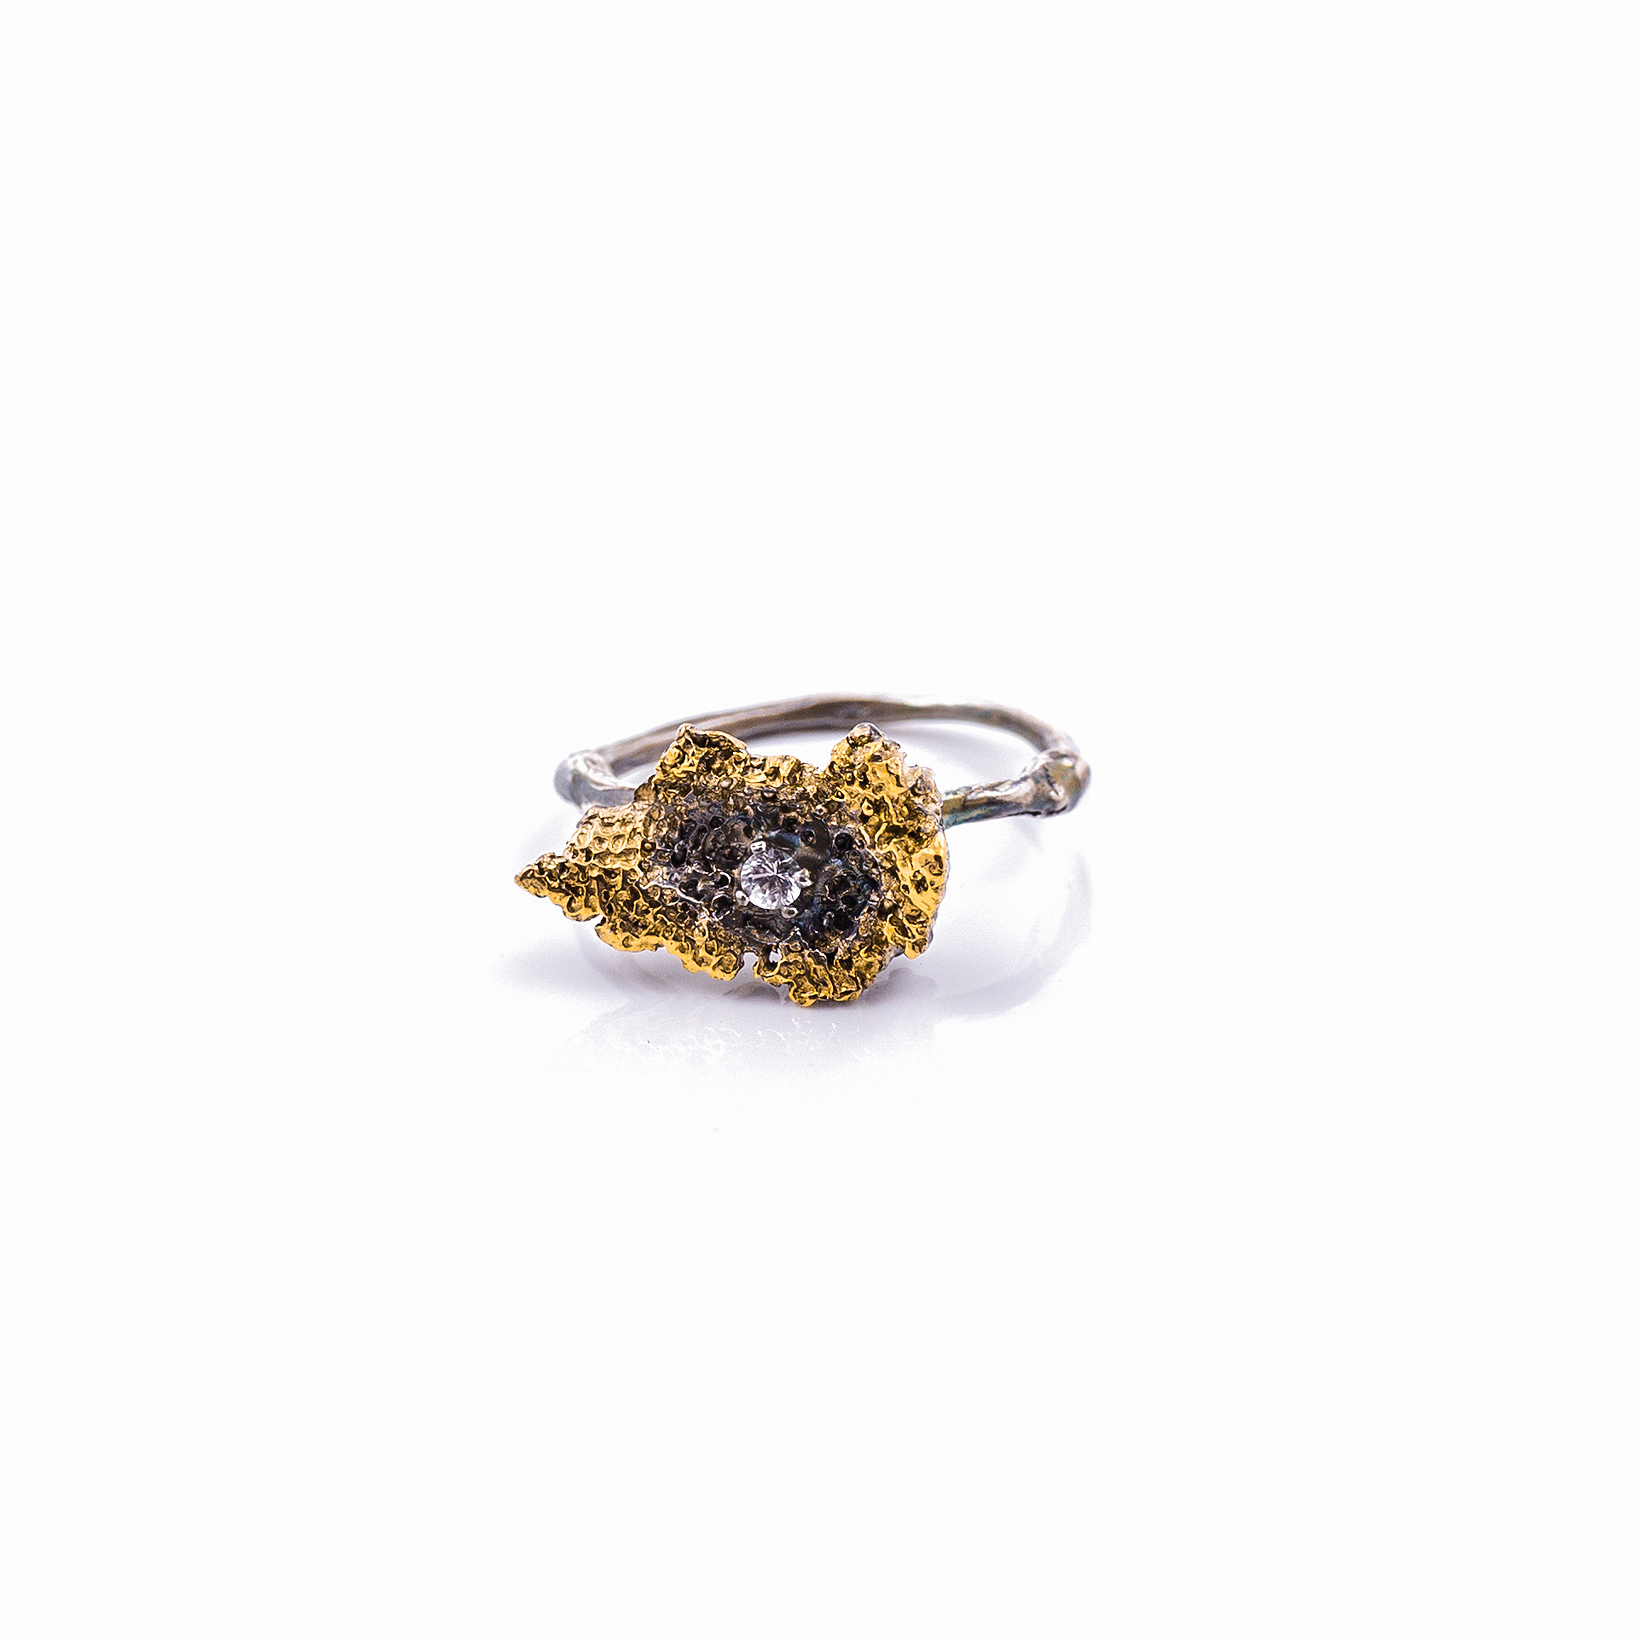 Small Inner Island Ring   | Sterling silver, white sapphire, gold vermeil, patina.